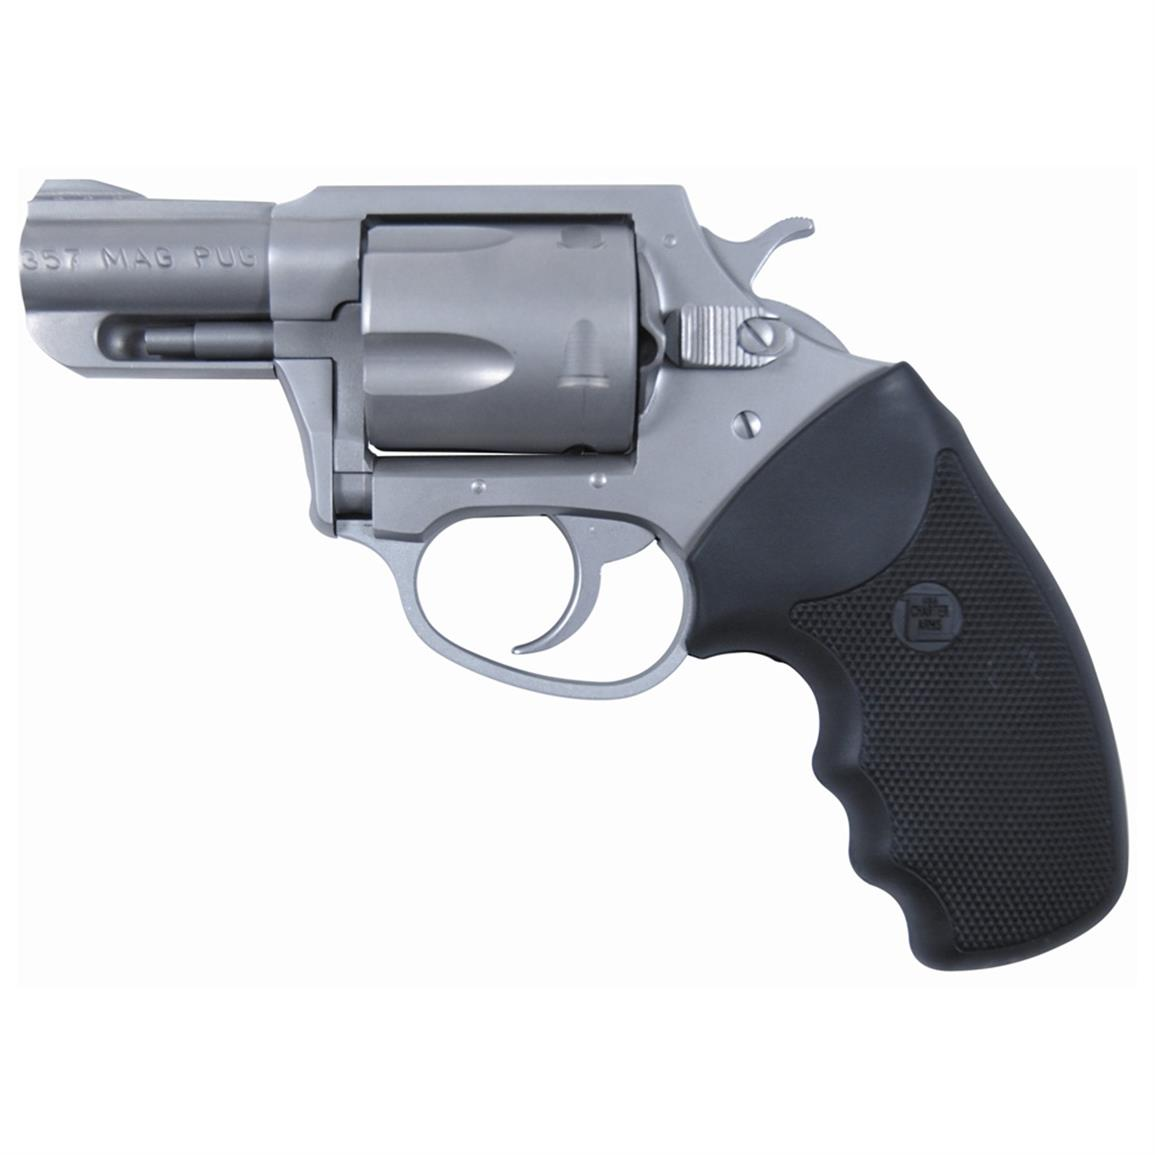 Charter Arms Mag Pug, Revolver, .357 Magnum, 73521, 678958735215, Hammerless / DAO